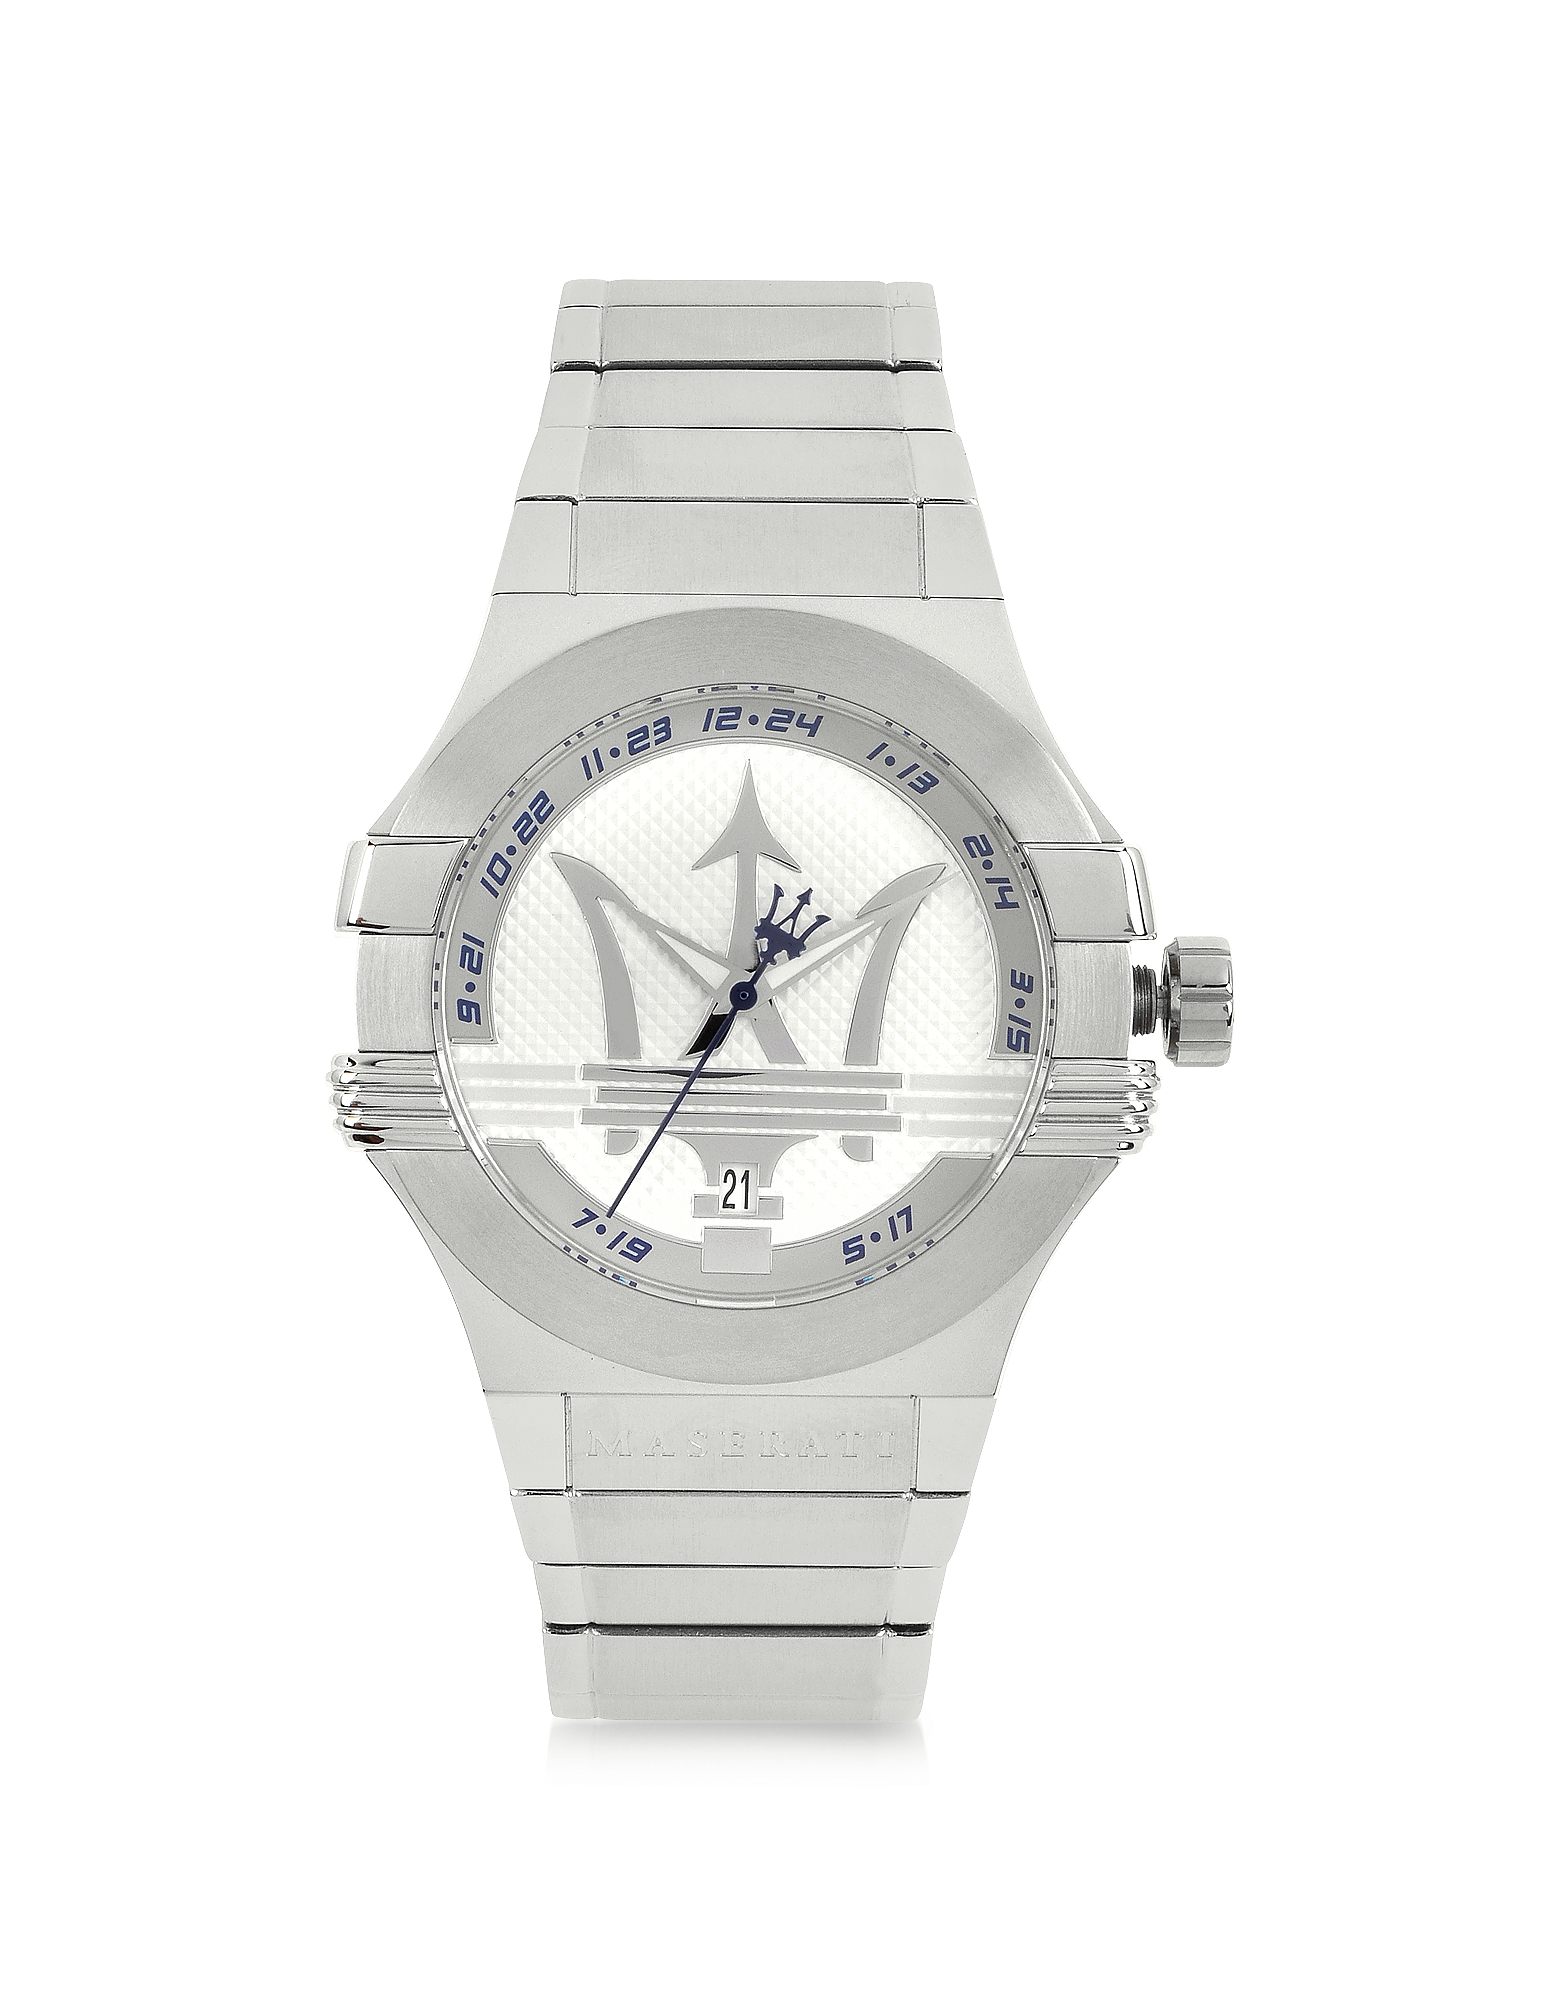 Maserati Women's Watches, Potenza 3H Silver Dial Stainless Steel Watch